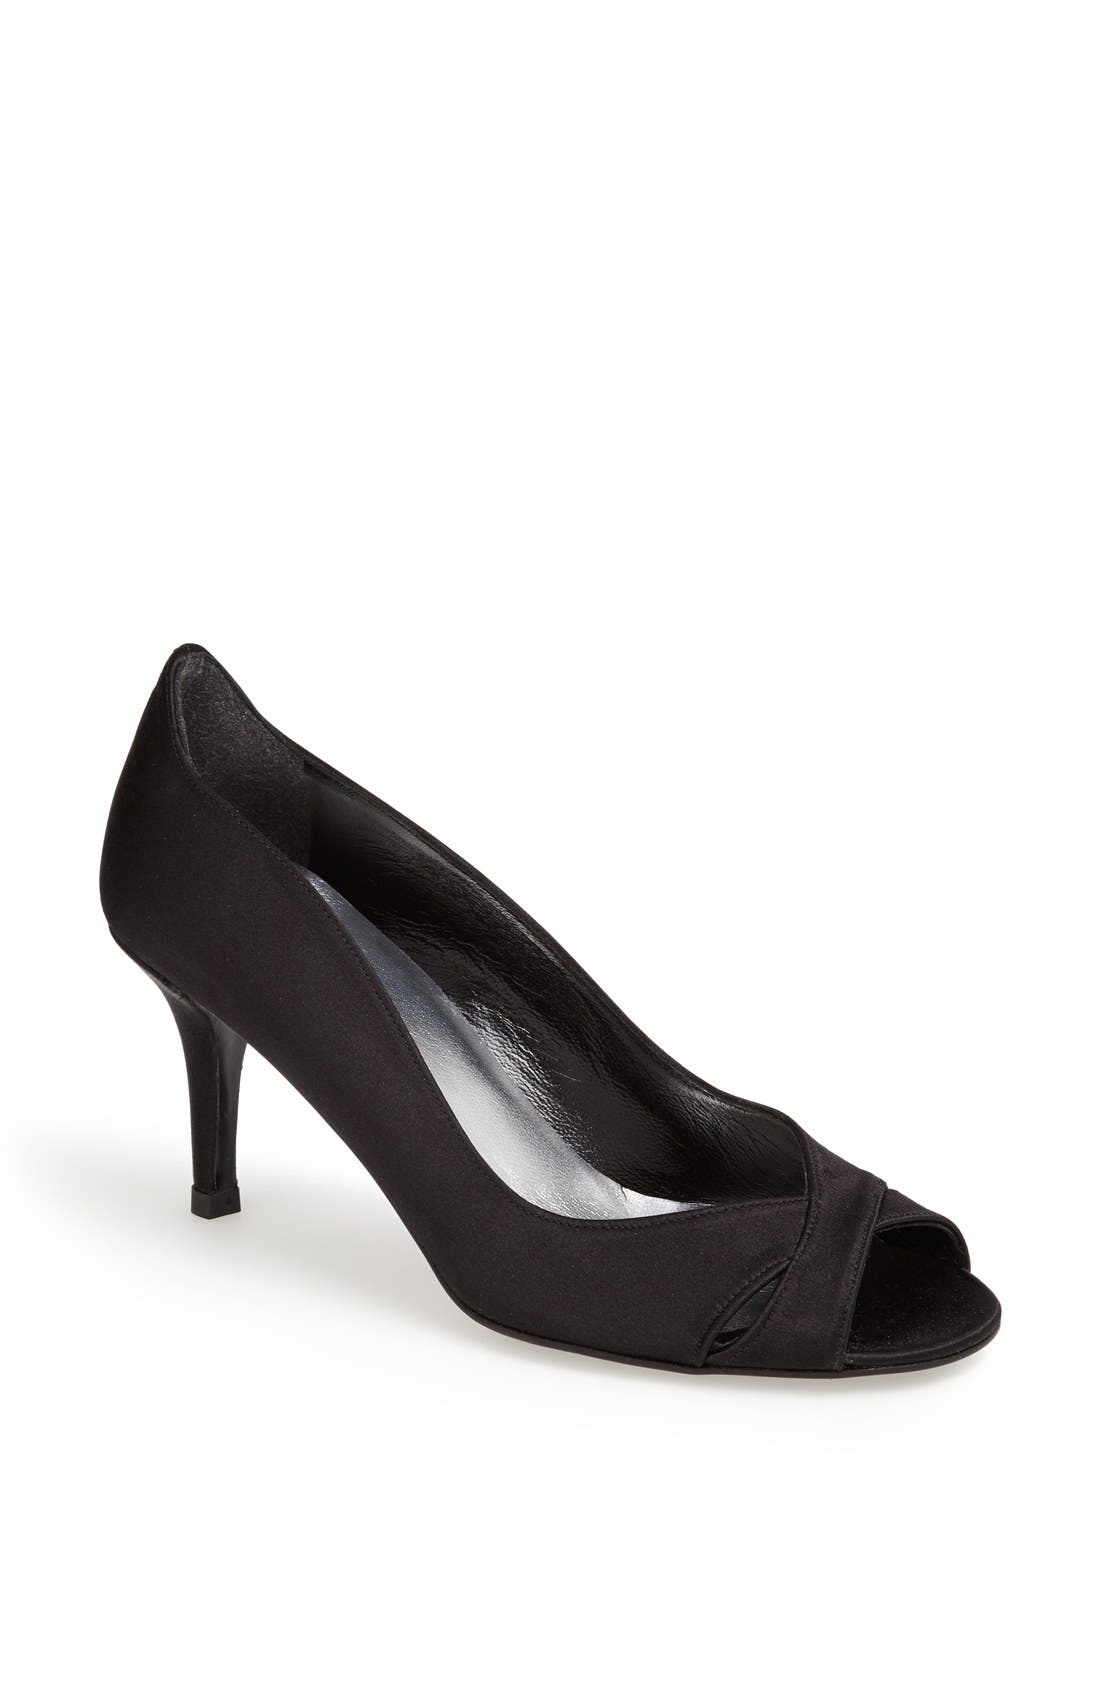 Alternate Image 1 Selected - Stuart Weitzman 'Showupritz' Satin Peep Toe Pump